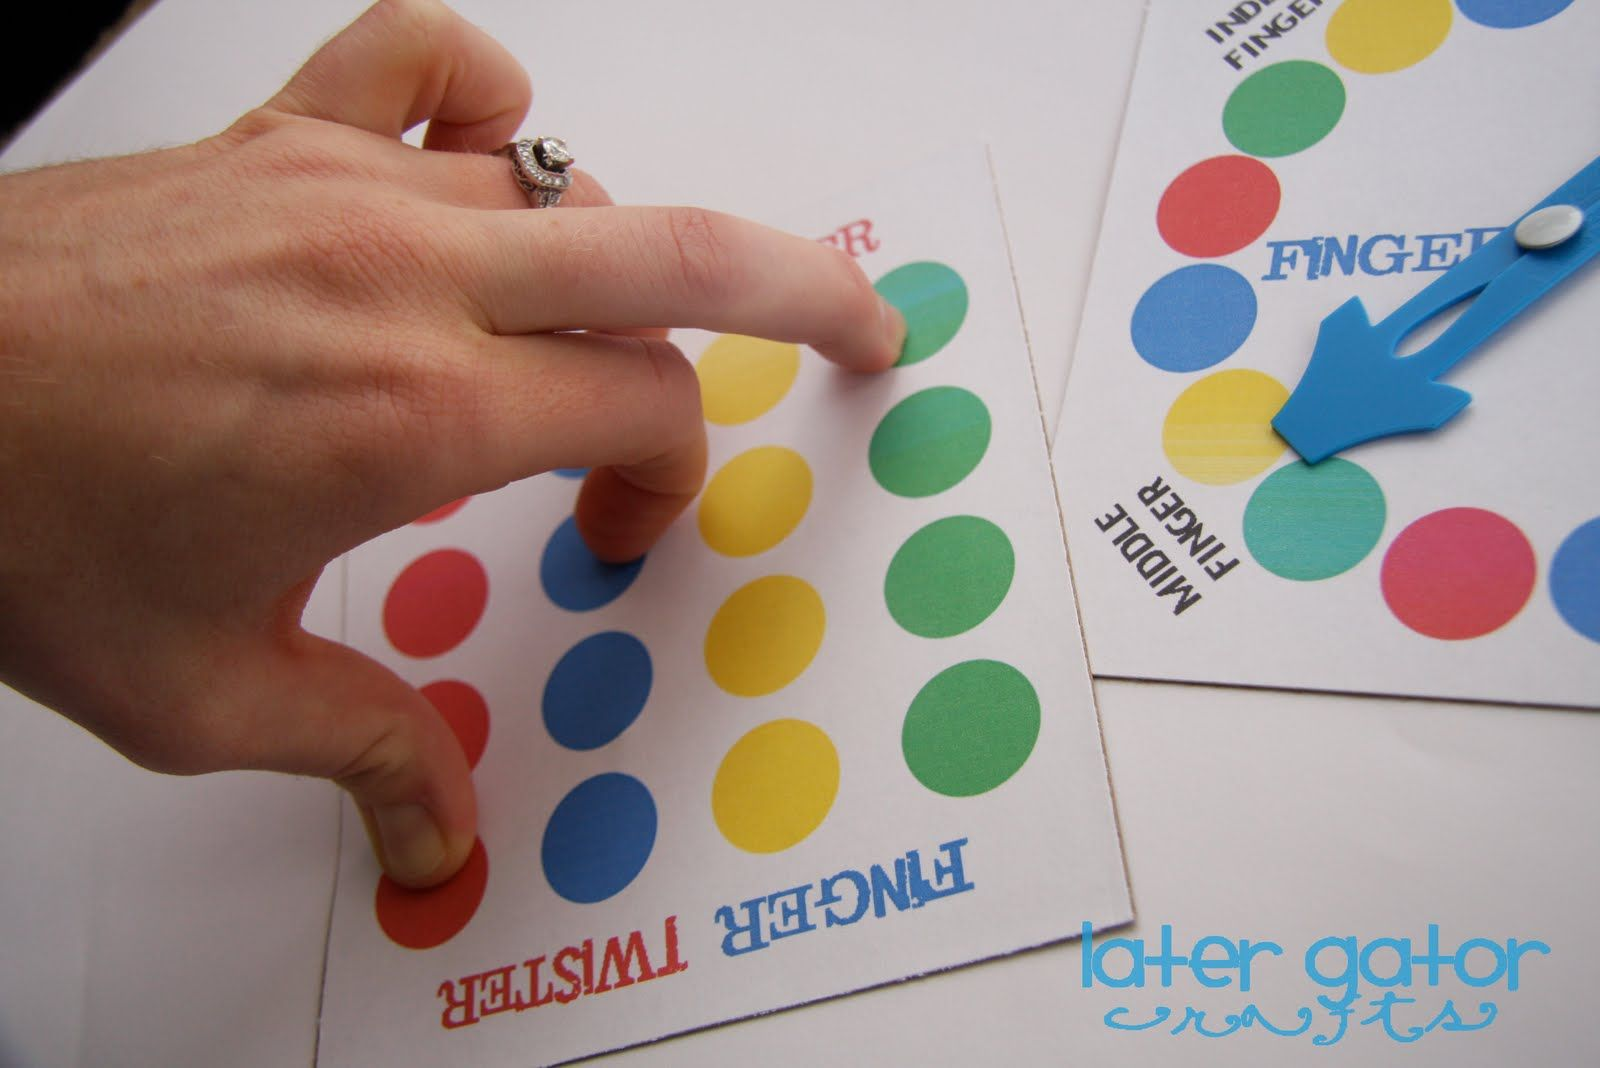 photo relating to Finger Twister Printable named Finger Twister - Do it yourself printables directions For the